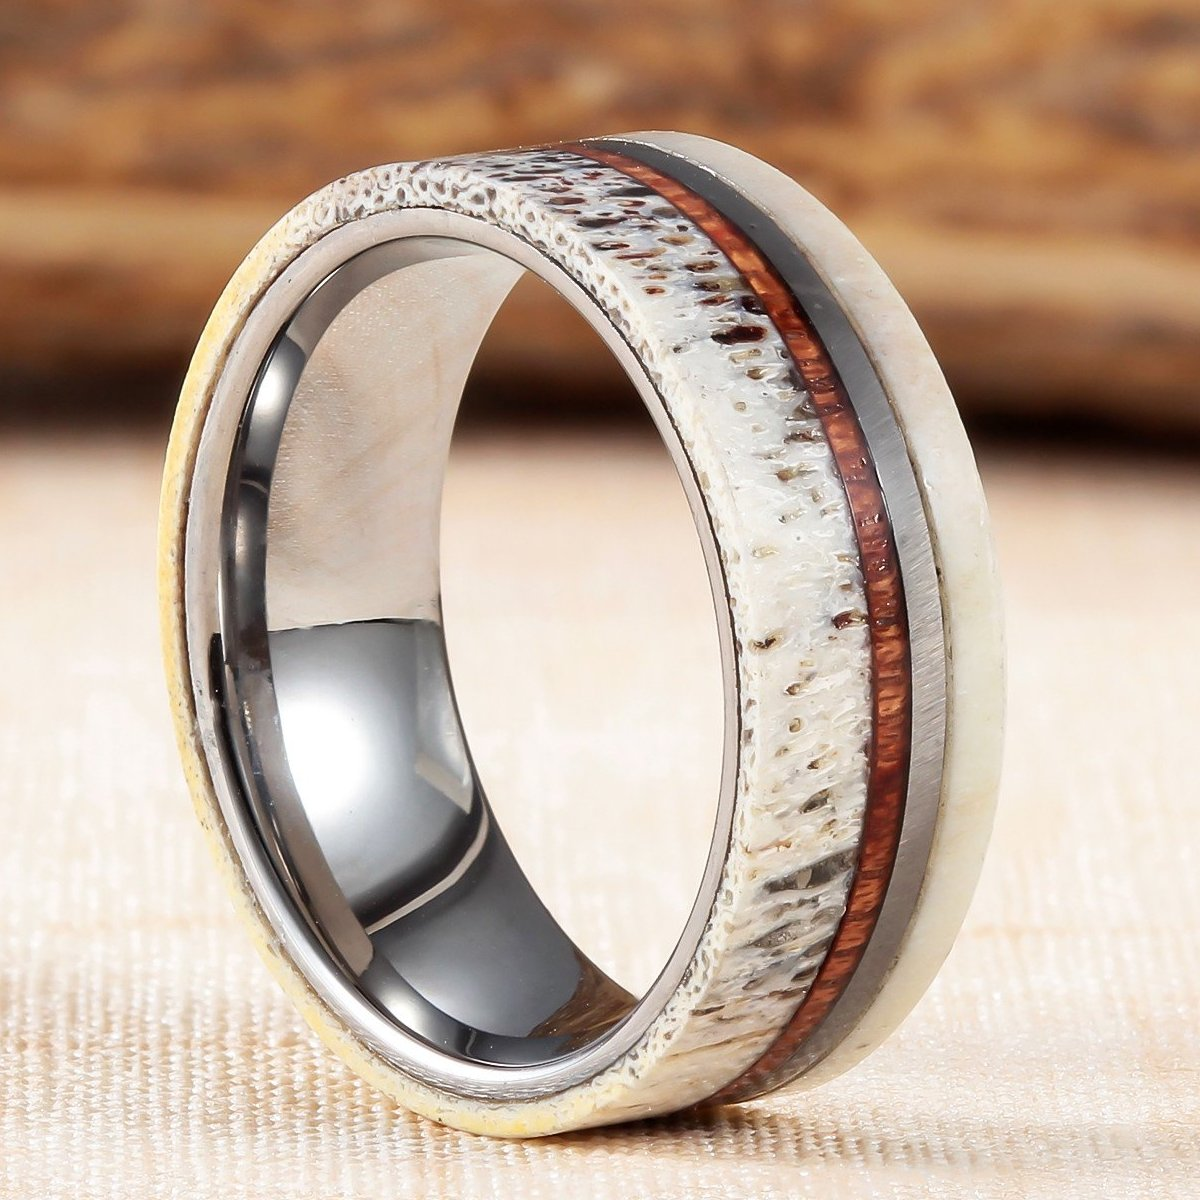 mens bands wedding rings band ring inspirational w best wood elk ideas inlay of staghead antler new